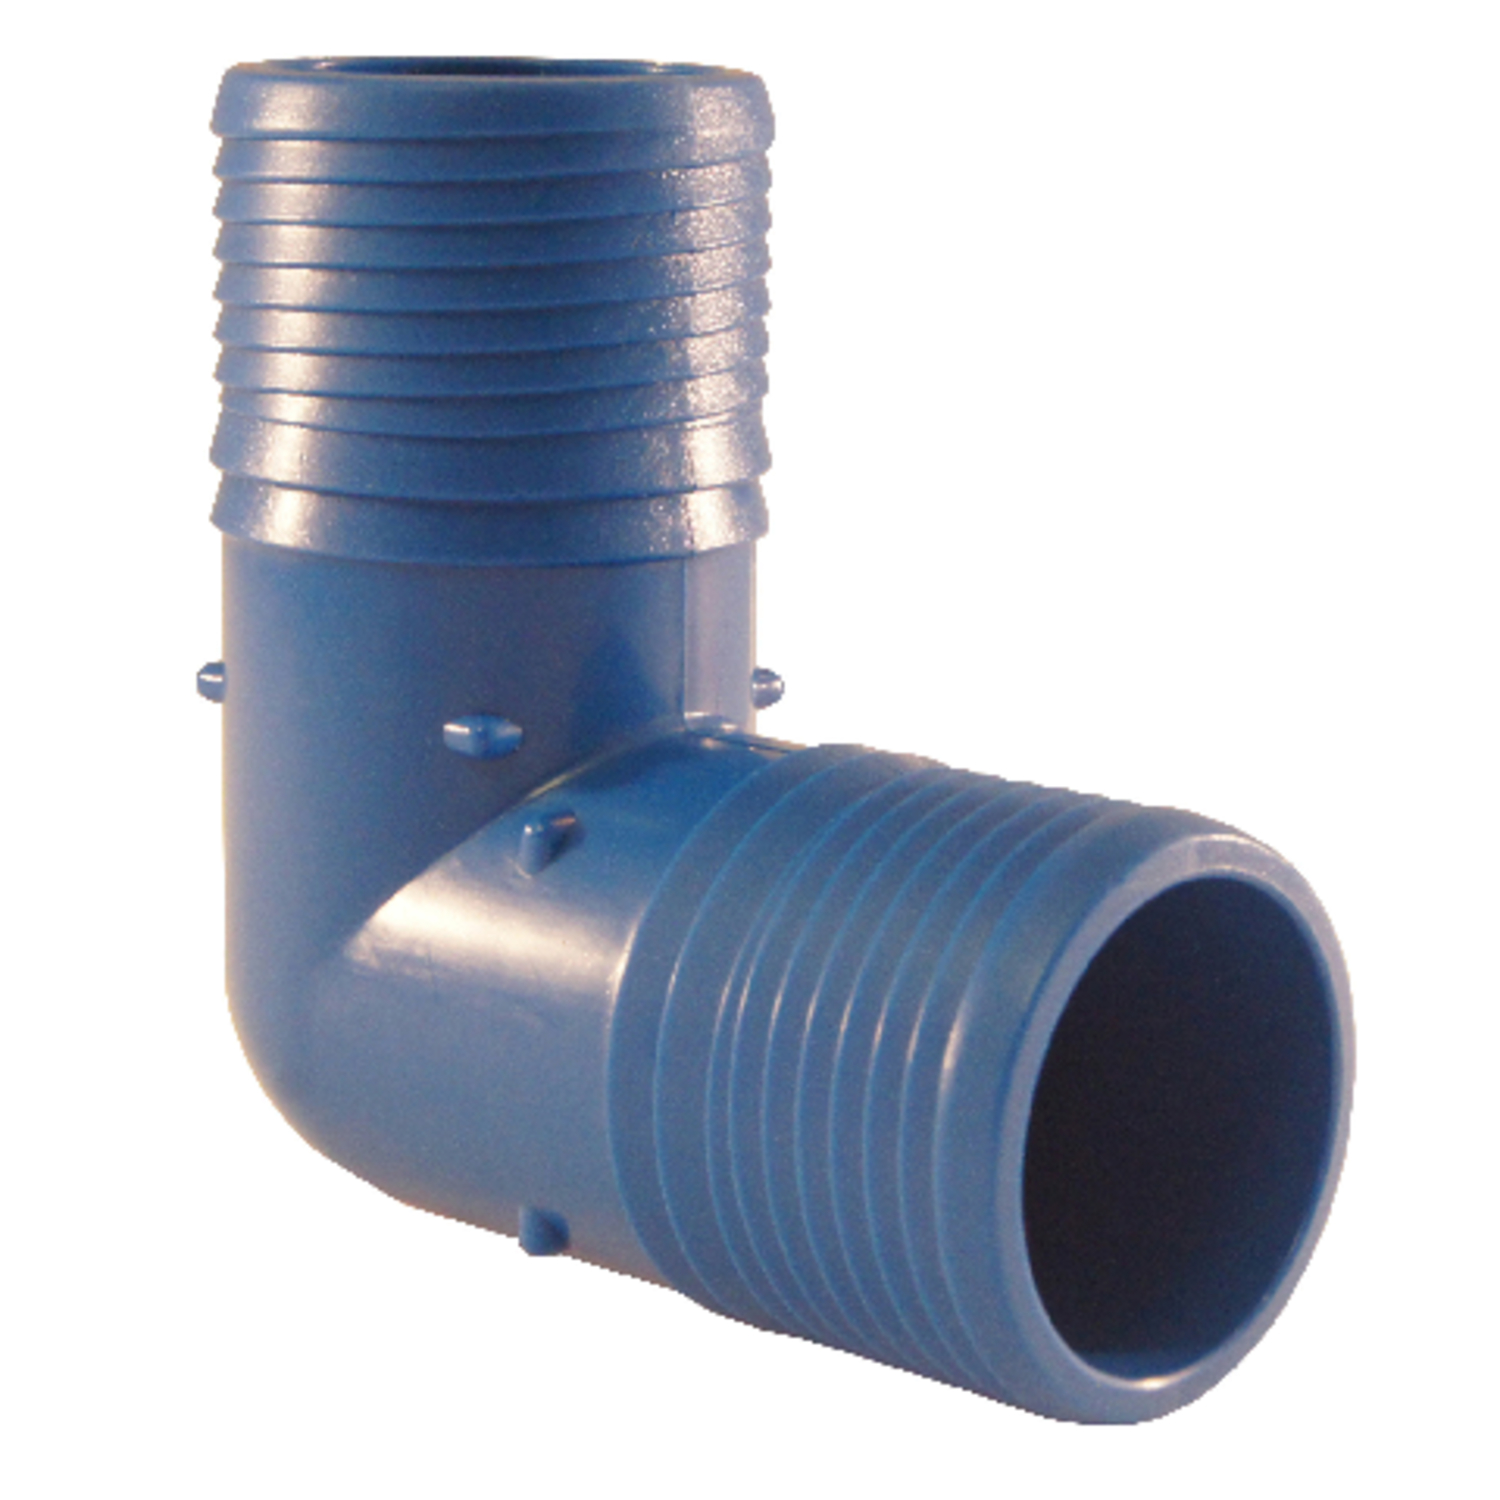 Blue Twisters  1-1/2 in. Insert   x 1-1/2 in. Dia. Insert  Polypropylene  Elbow